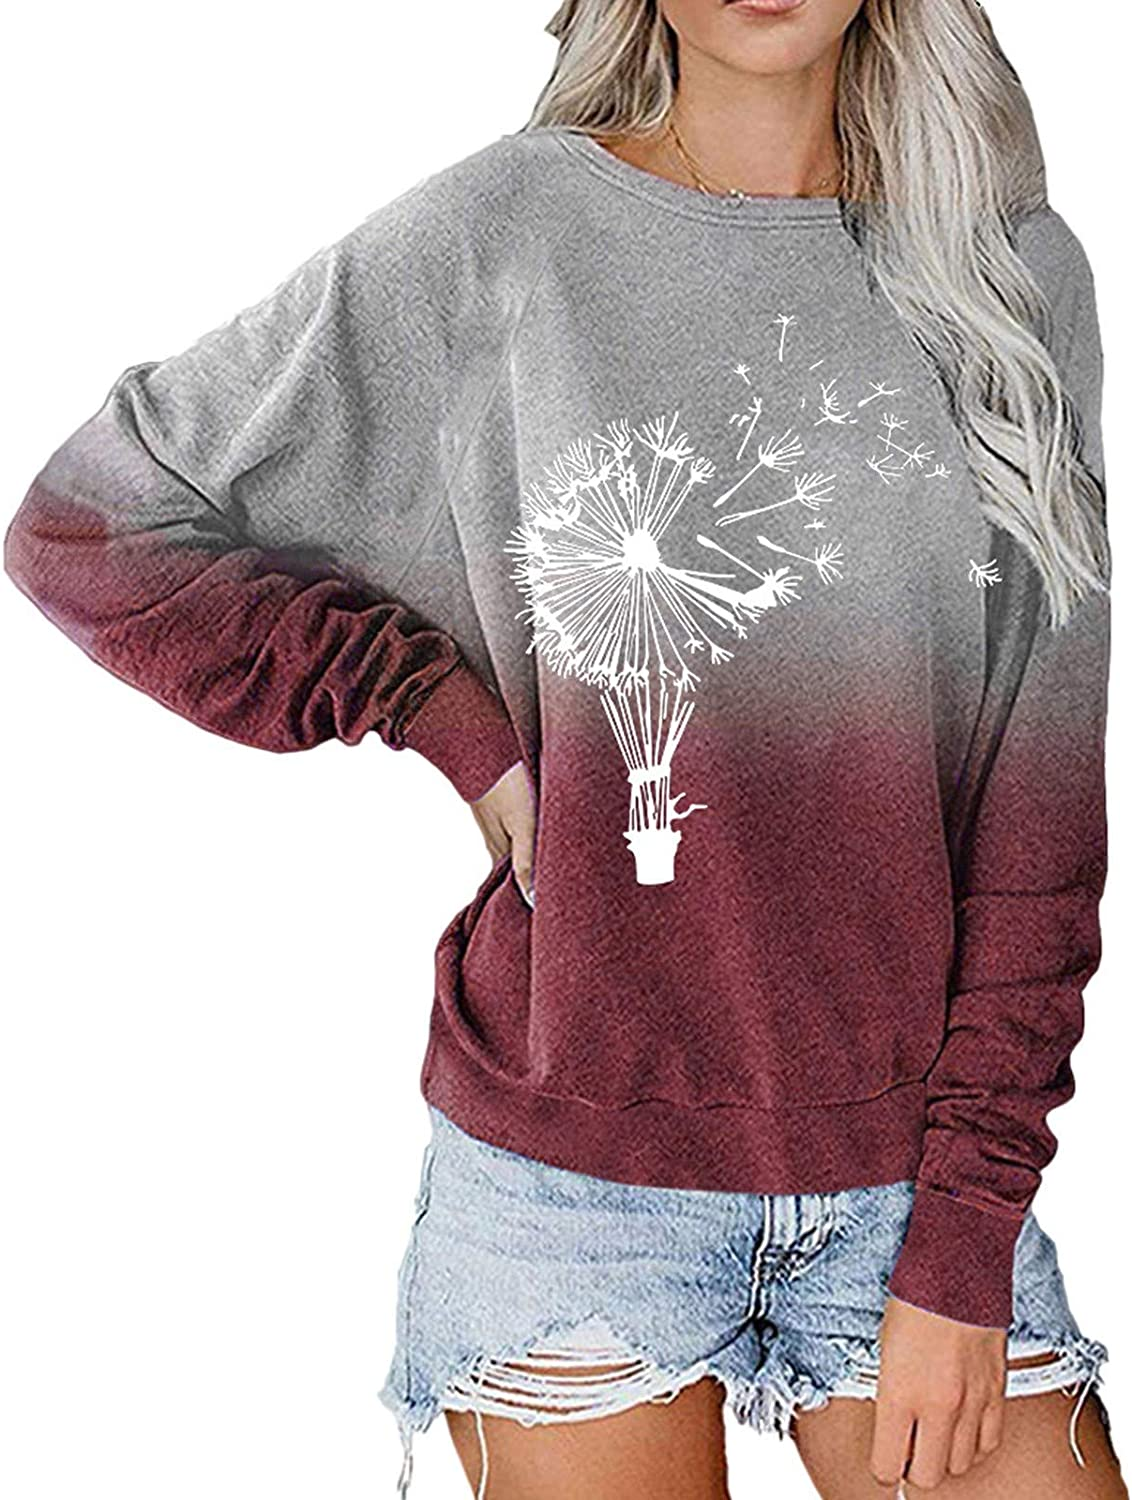 Long Sleeve Tops for Women,Womens Long Sleeve Pullover Fashine Colorful Tie Dye Printed Plus Size Crewneck Sweatshirts